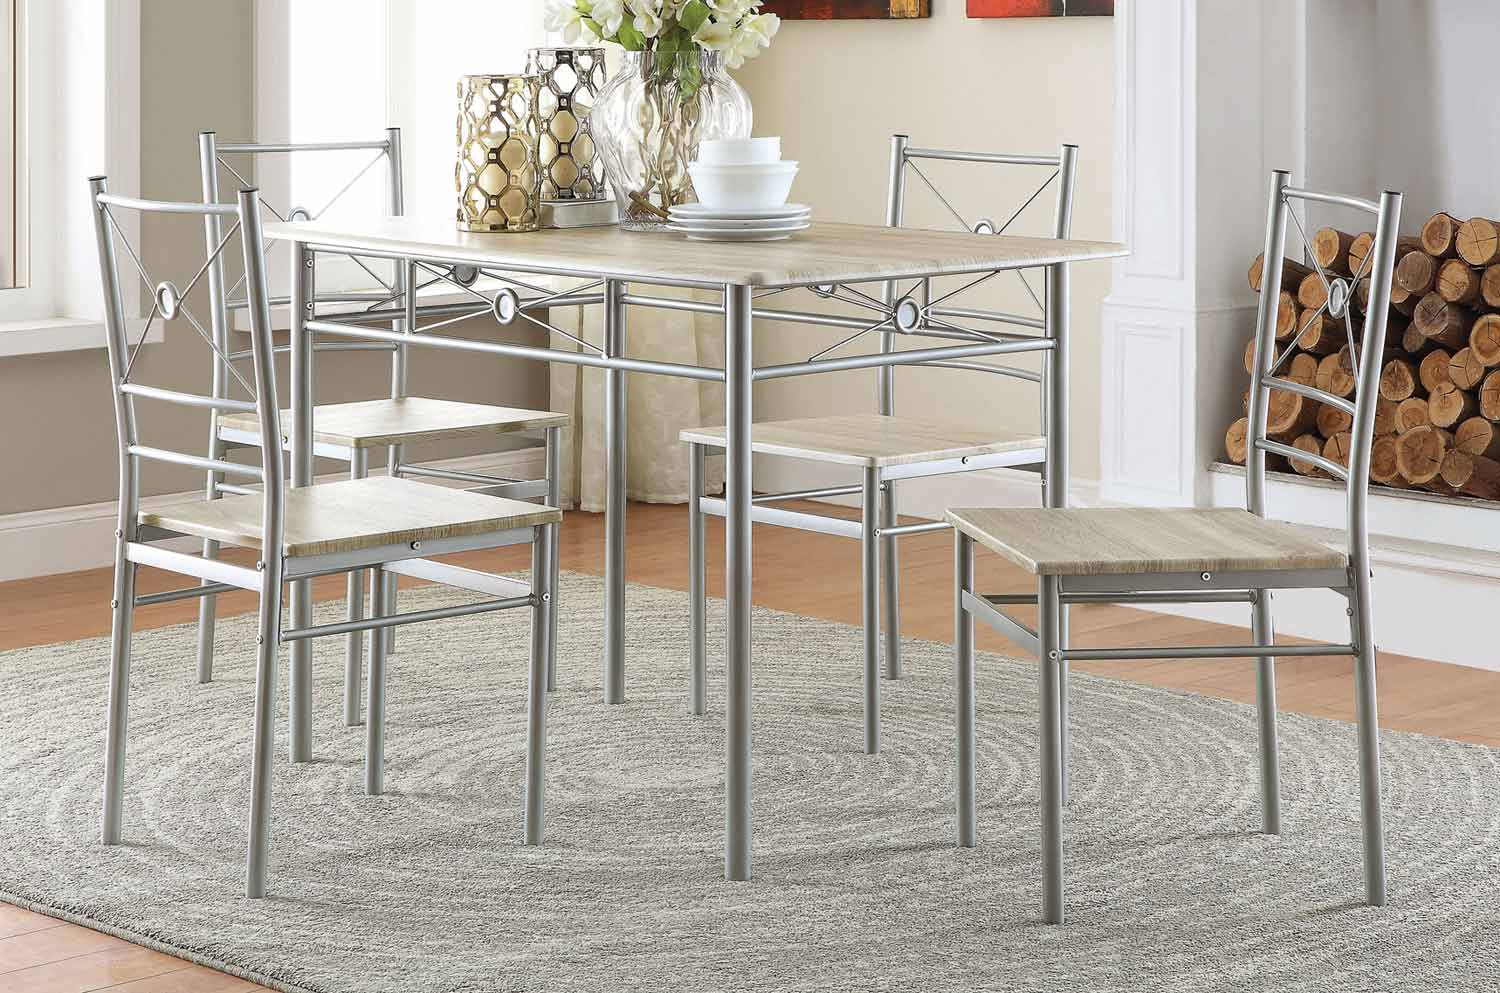 Coaster 100035 5-Pc Dinette Set - Brushed Silver